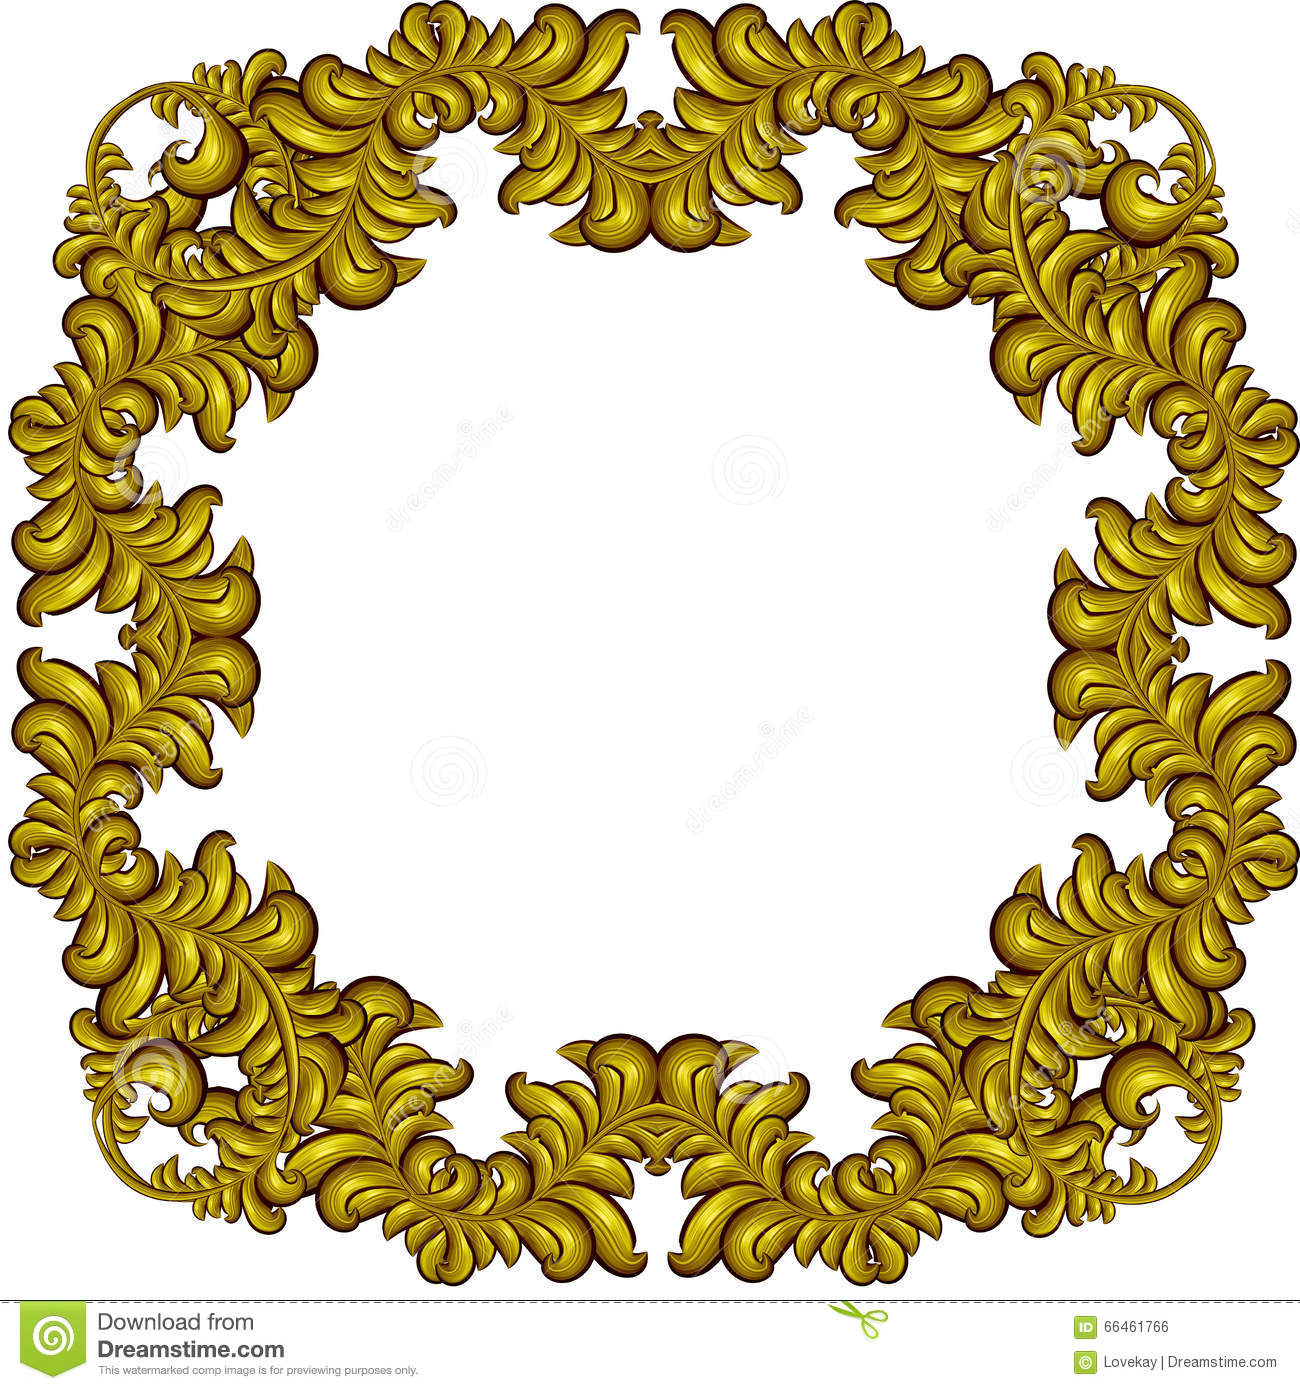 Golden frame with luxury floral elements baroque style for Baroque architecture elements